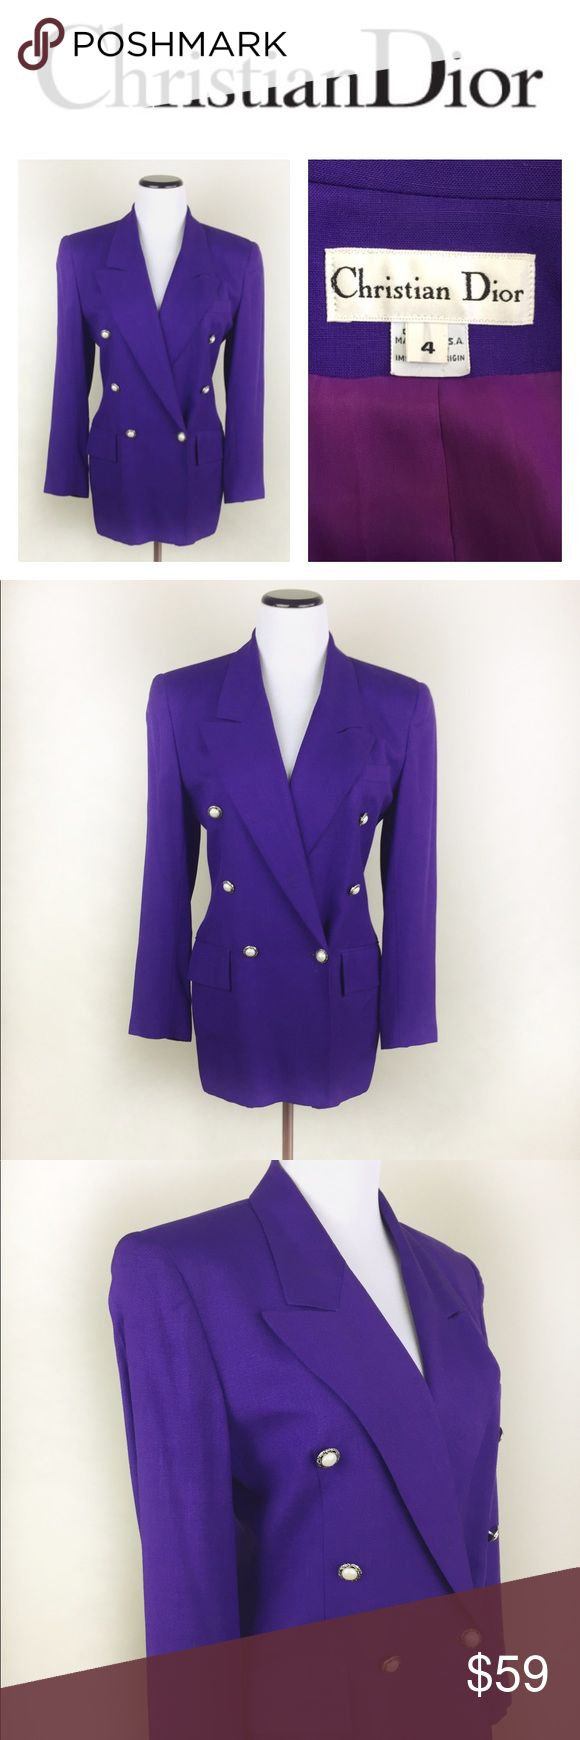 🔥SALE🔥CHRISTIAN DIOR VINTAGE PURPLE BLAZER4 Divine Christian Dios purple blazer with gorgeous pearl like button silver framed in size 4. This is a vintage item, with very little signs of use, excellent condition. I bought it a few years back in a NY vintage store, no fabric tag but feels like cotton/linen blend. It has a full late 80's early 90's vibe (which I'm a sucker for!) has some small details on the end of sleeve check pic. Shoulder padded. Christian Dior Jackets & Coats Blazers